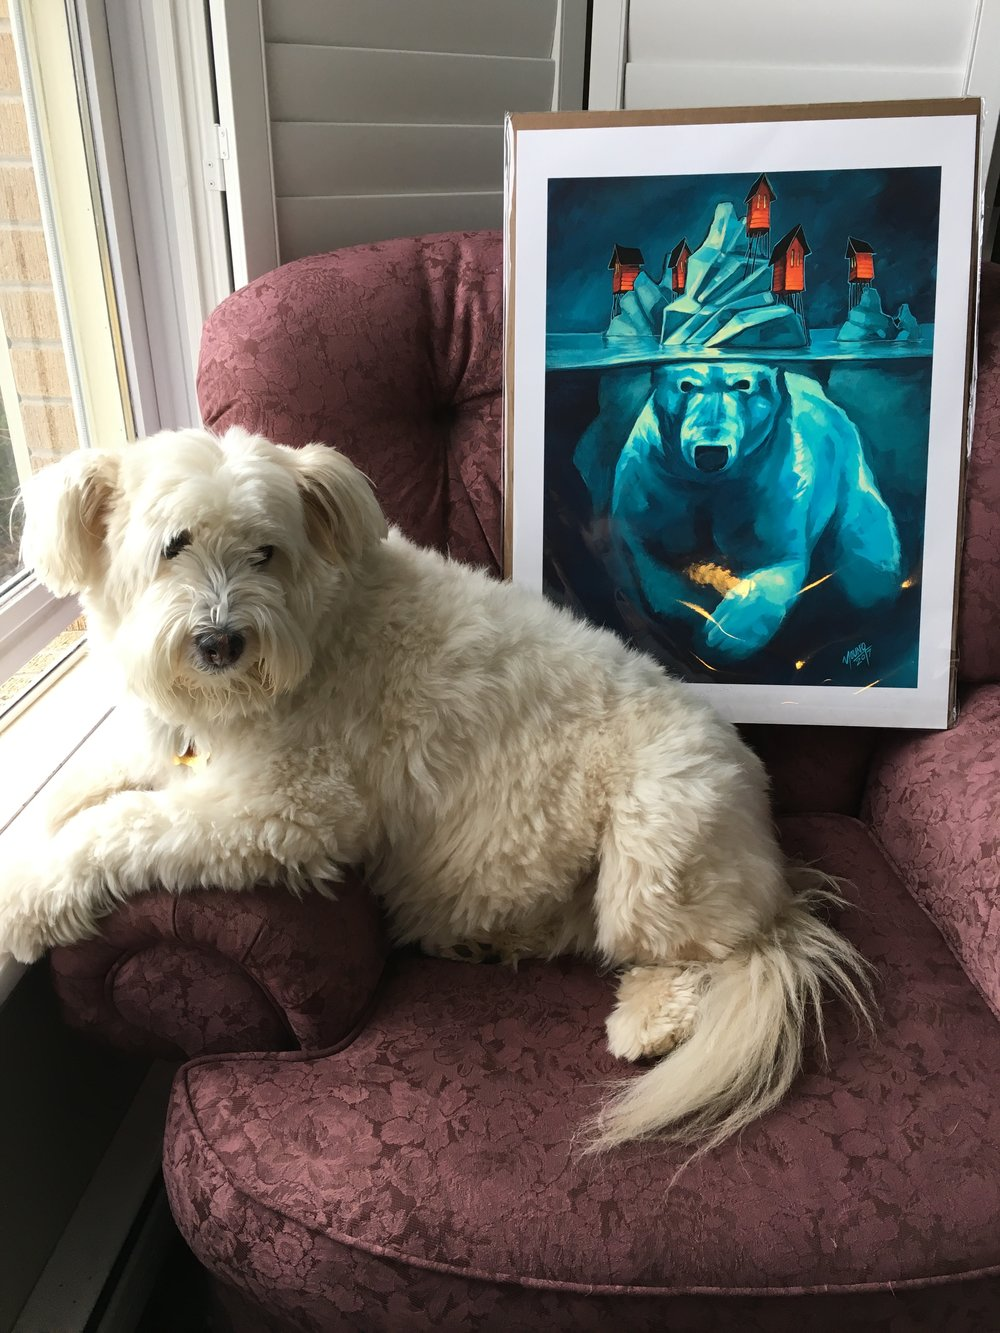 Heidi Bear surprised me with the 'Giants' print as my Fur Mom gift on Mothers Day!